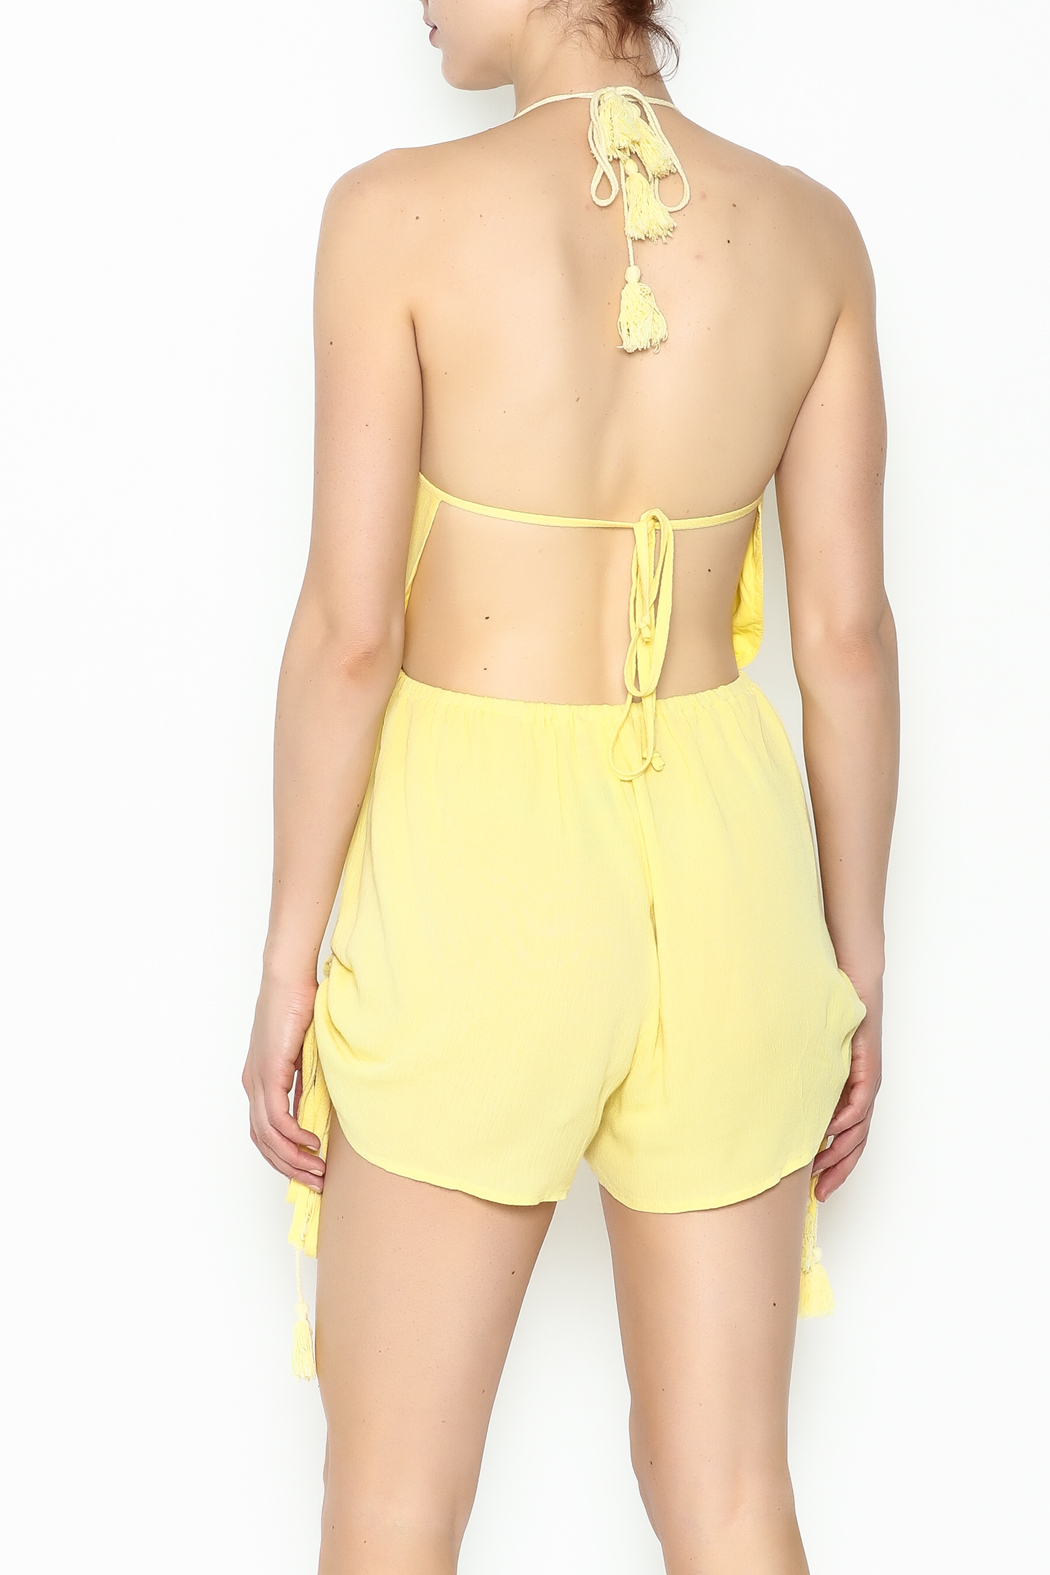 luxxel Yellow Strappy Romper - Back Cropped Image